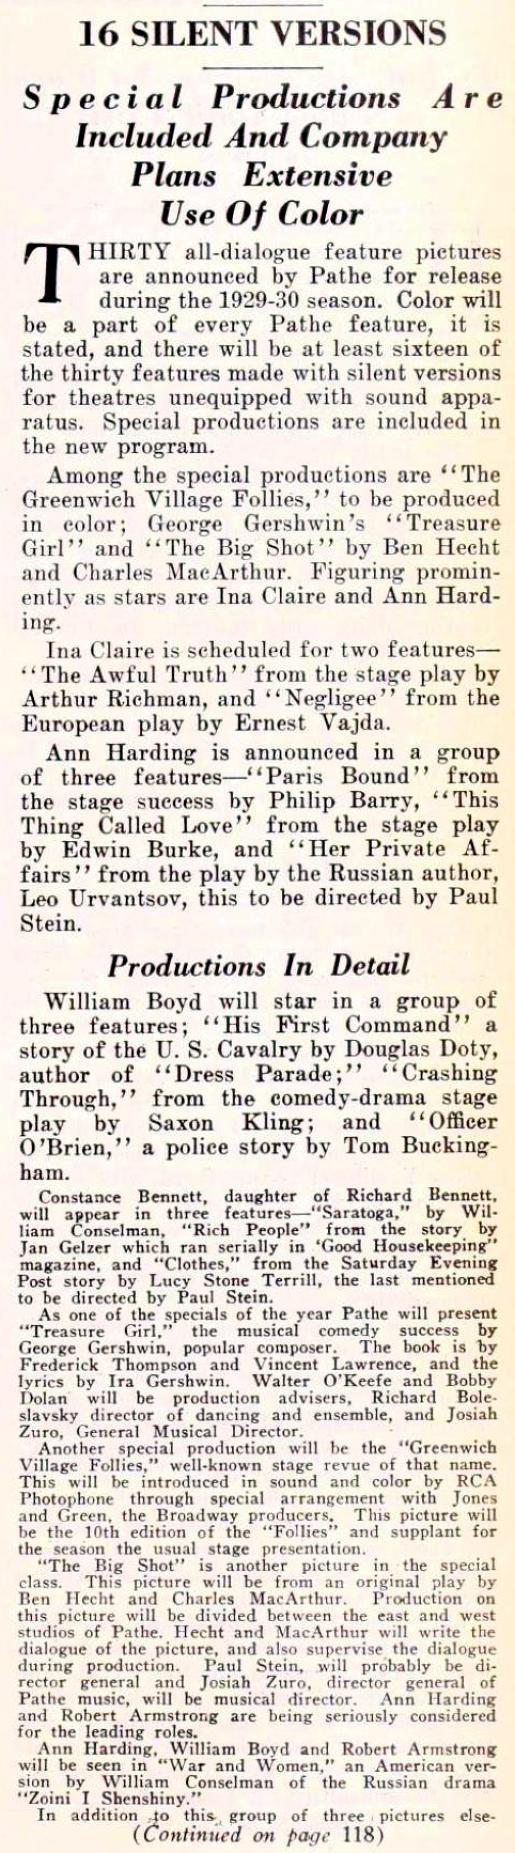 carole lombard motion picture news 070629cb